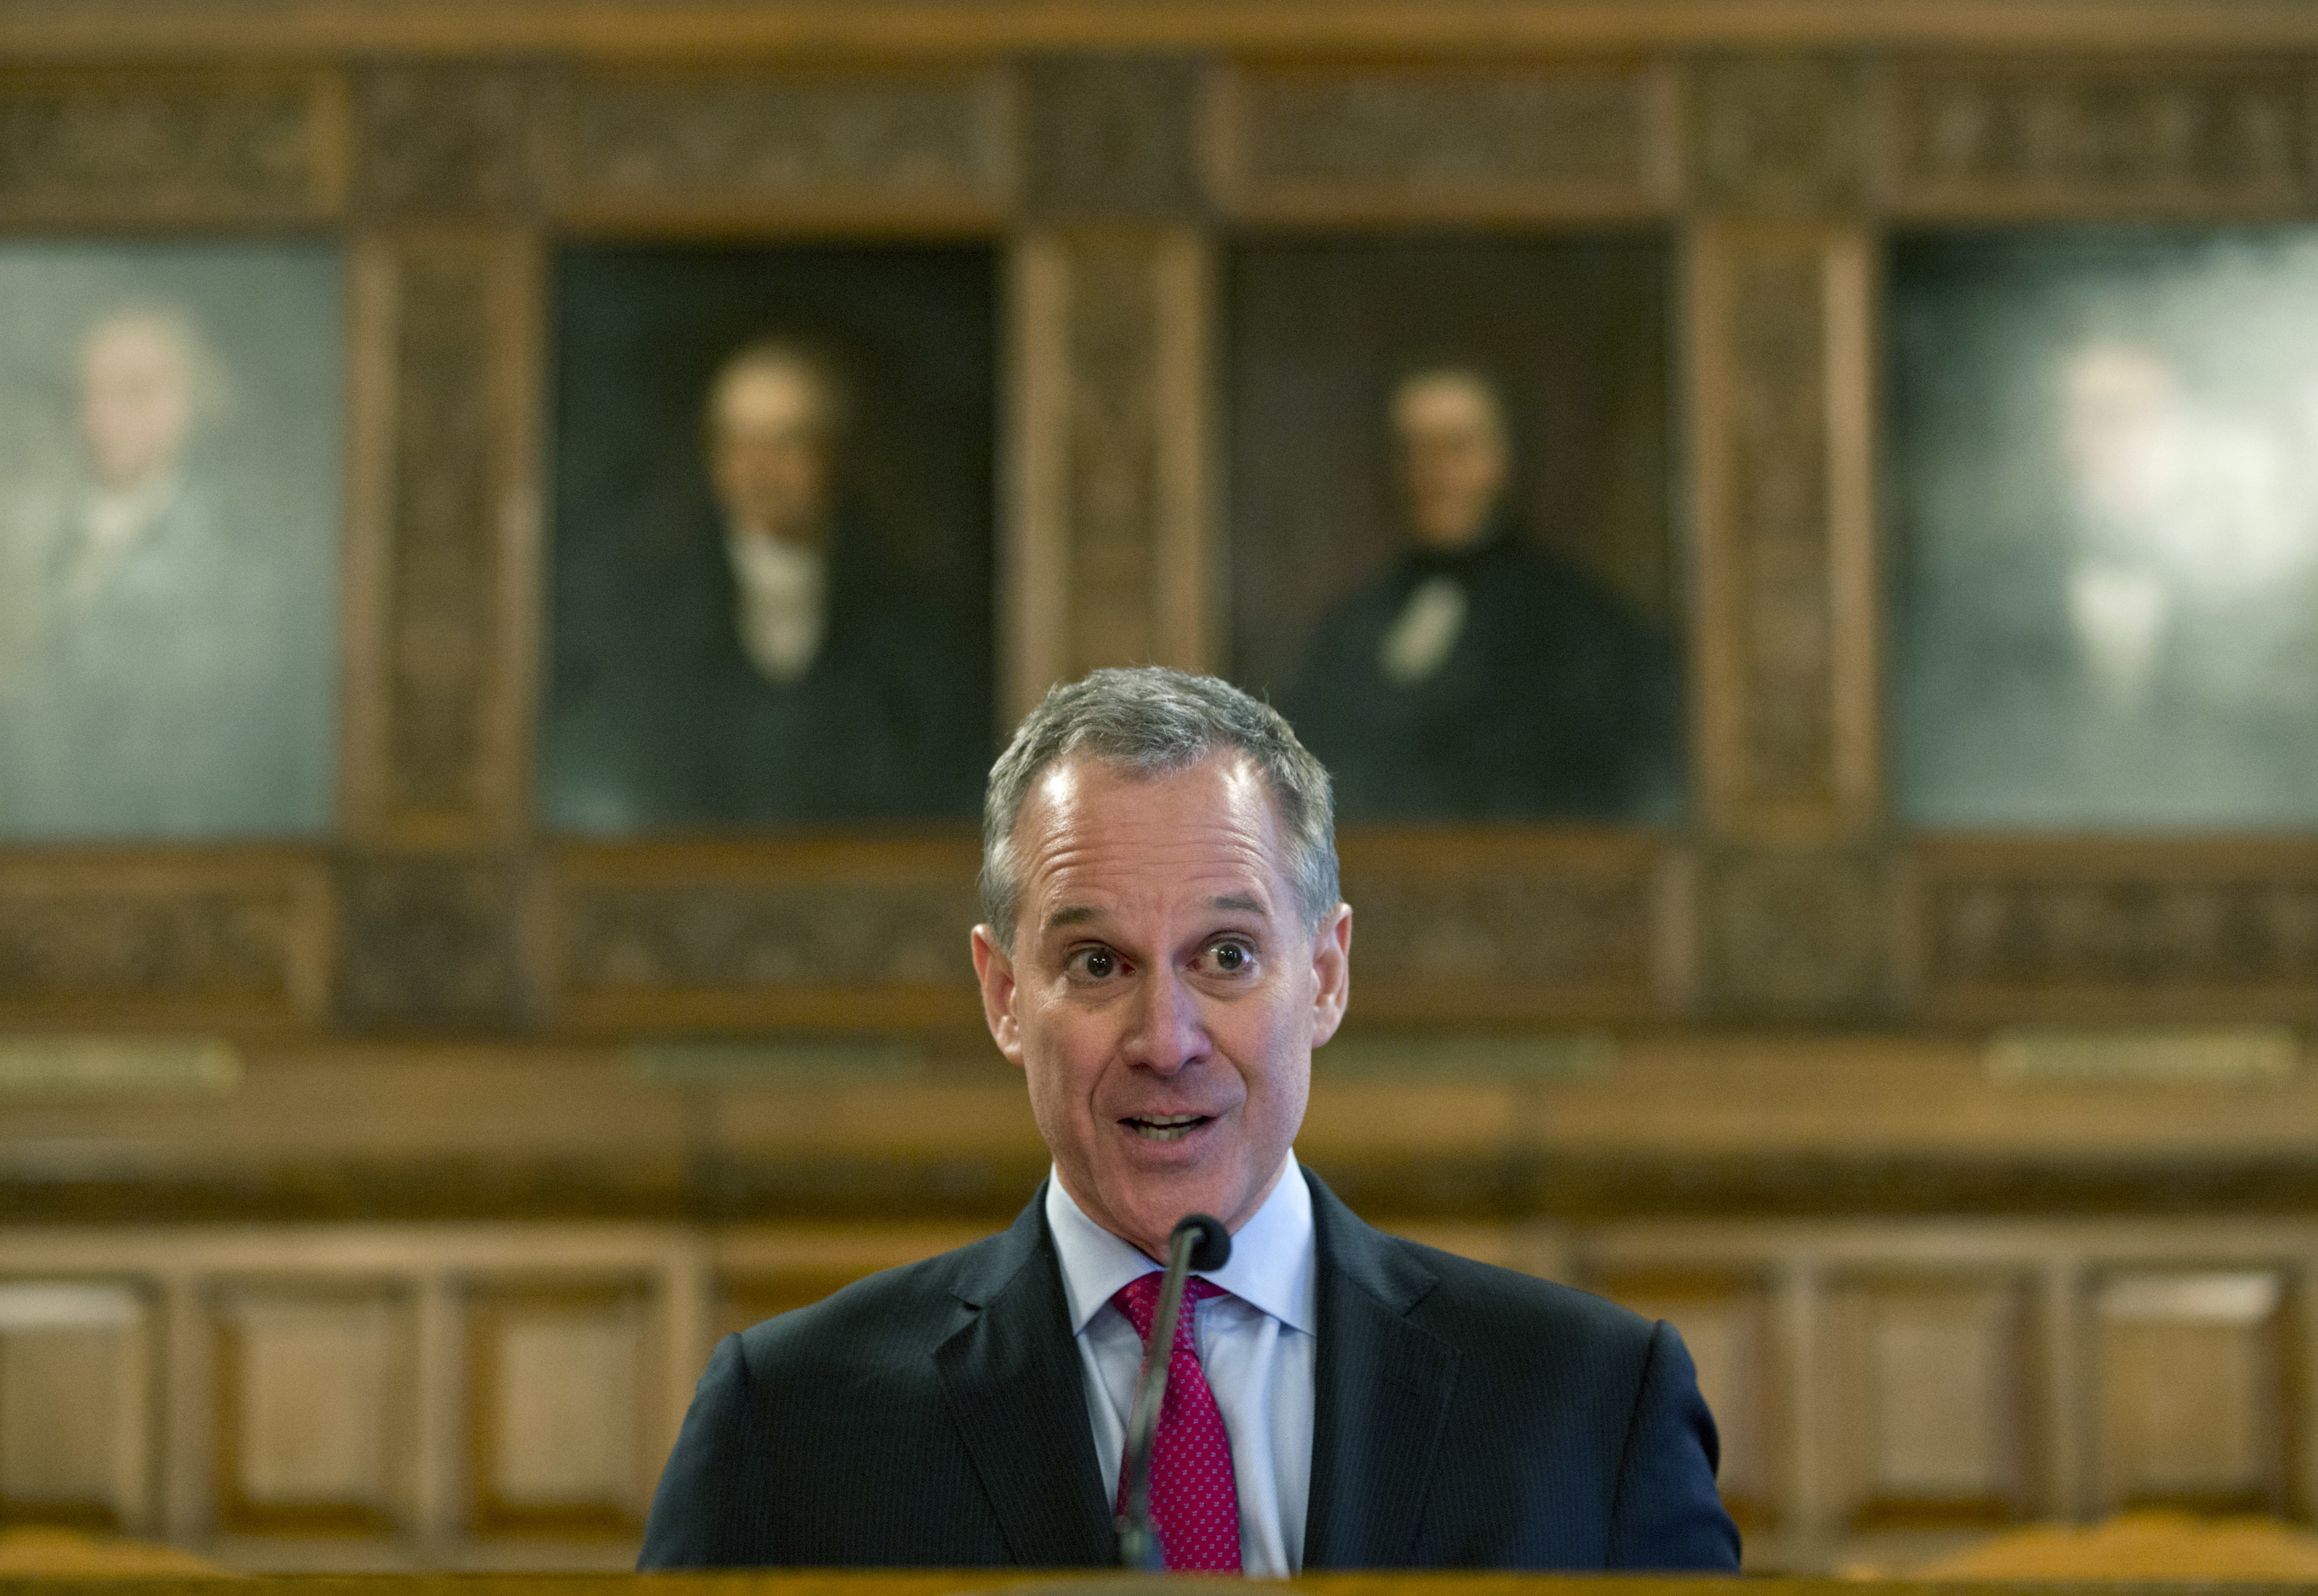 Eric Schneiderman speaks during Law Day at the Court of Appeals in Albany, NY, on May 2, 2016.